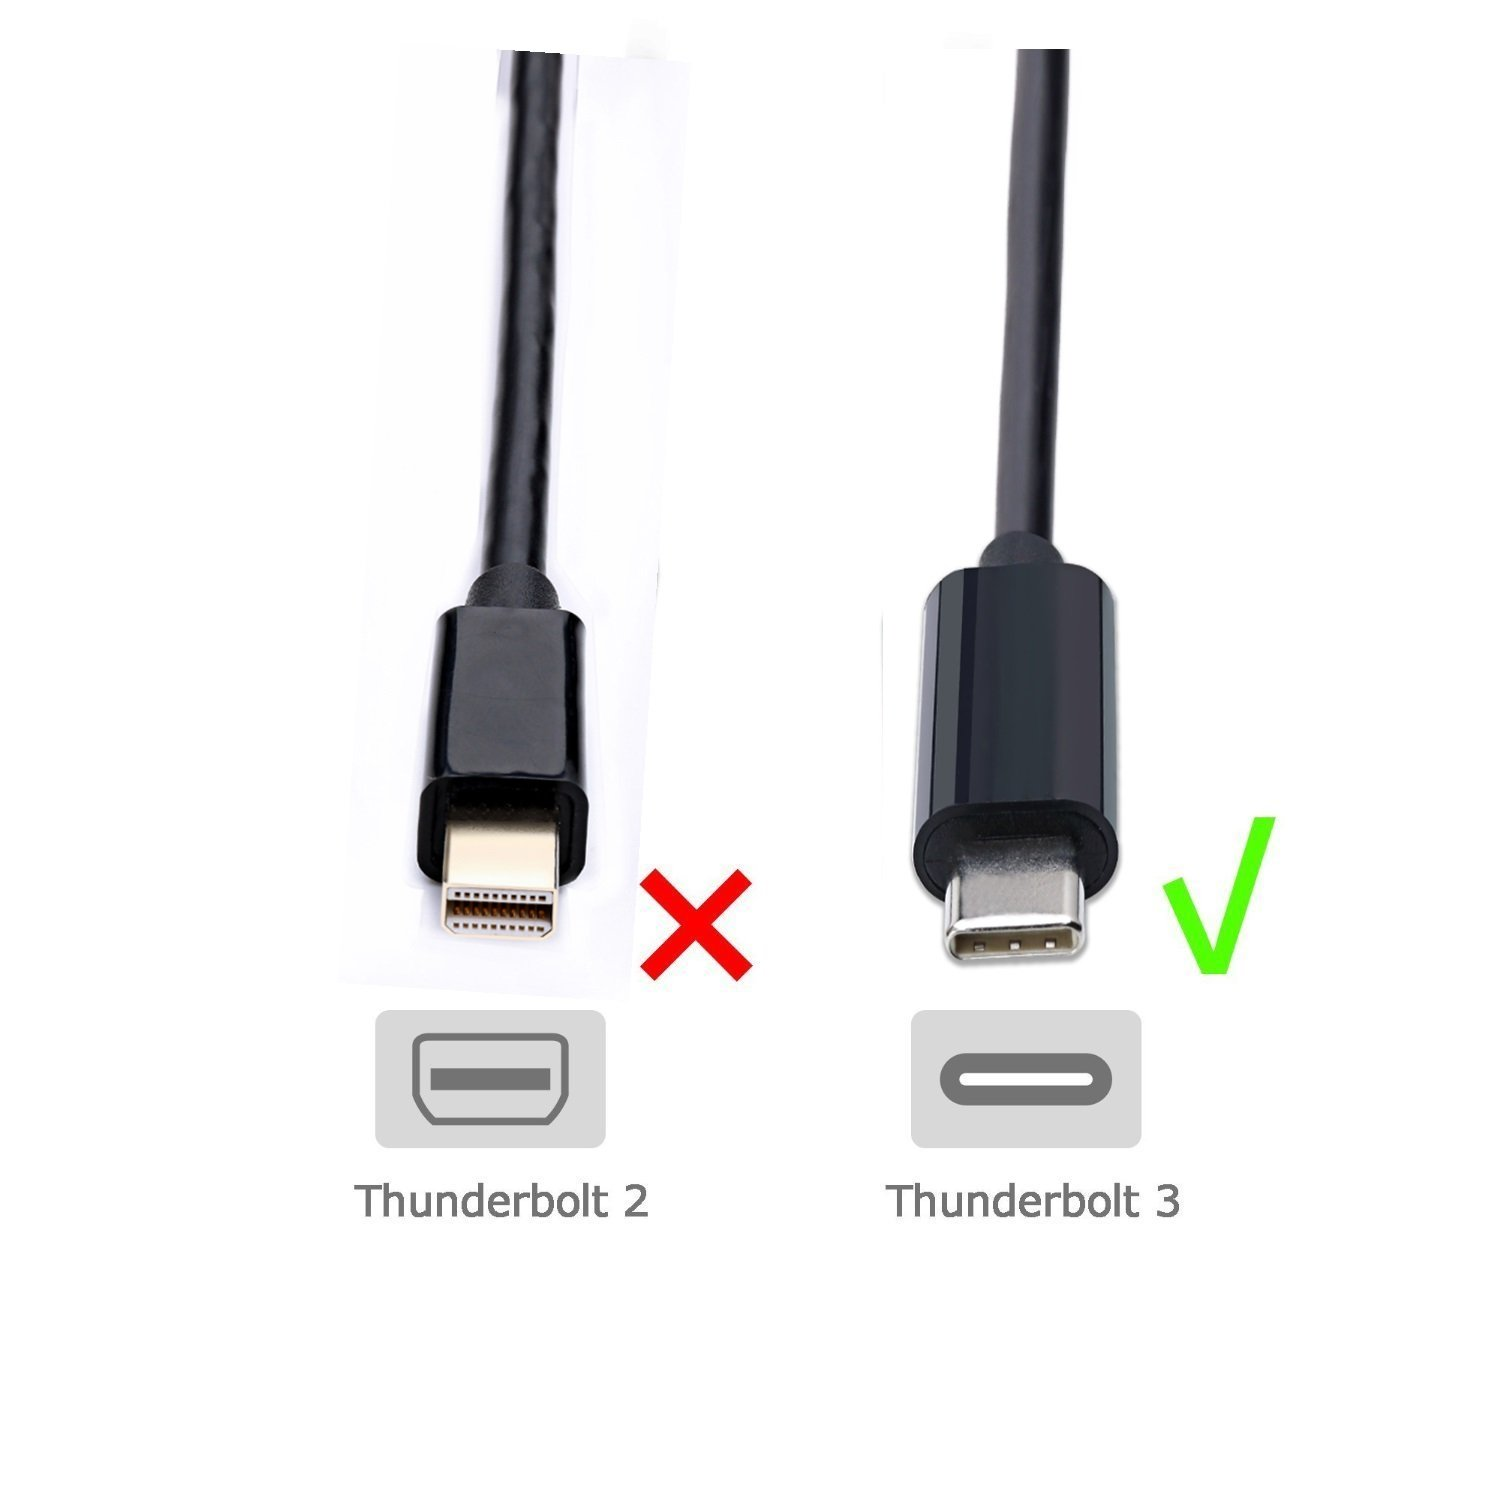 USB-C To VGA ,CableDeconn Thunderbolt 3 Type C to VGA Male Converter Adapter Cable 1.8M for New Macbook Google Chromebook Pixel,Dell XPS 13 15 Huawei Mate10 by CableDeconn (Image #5)